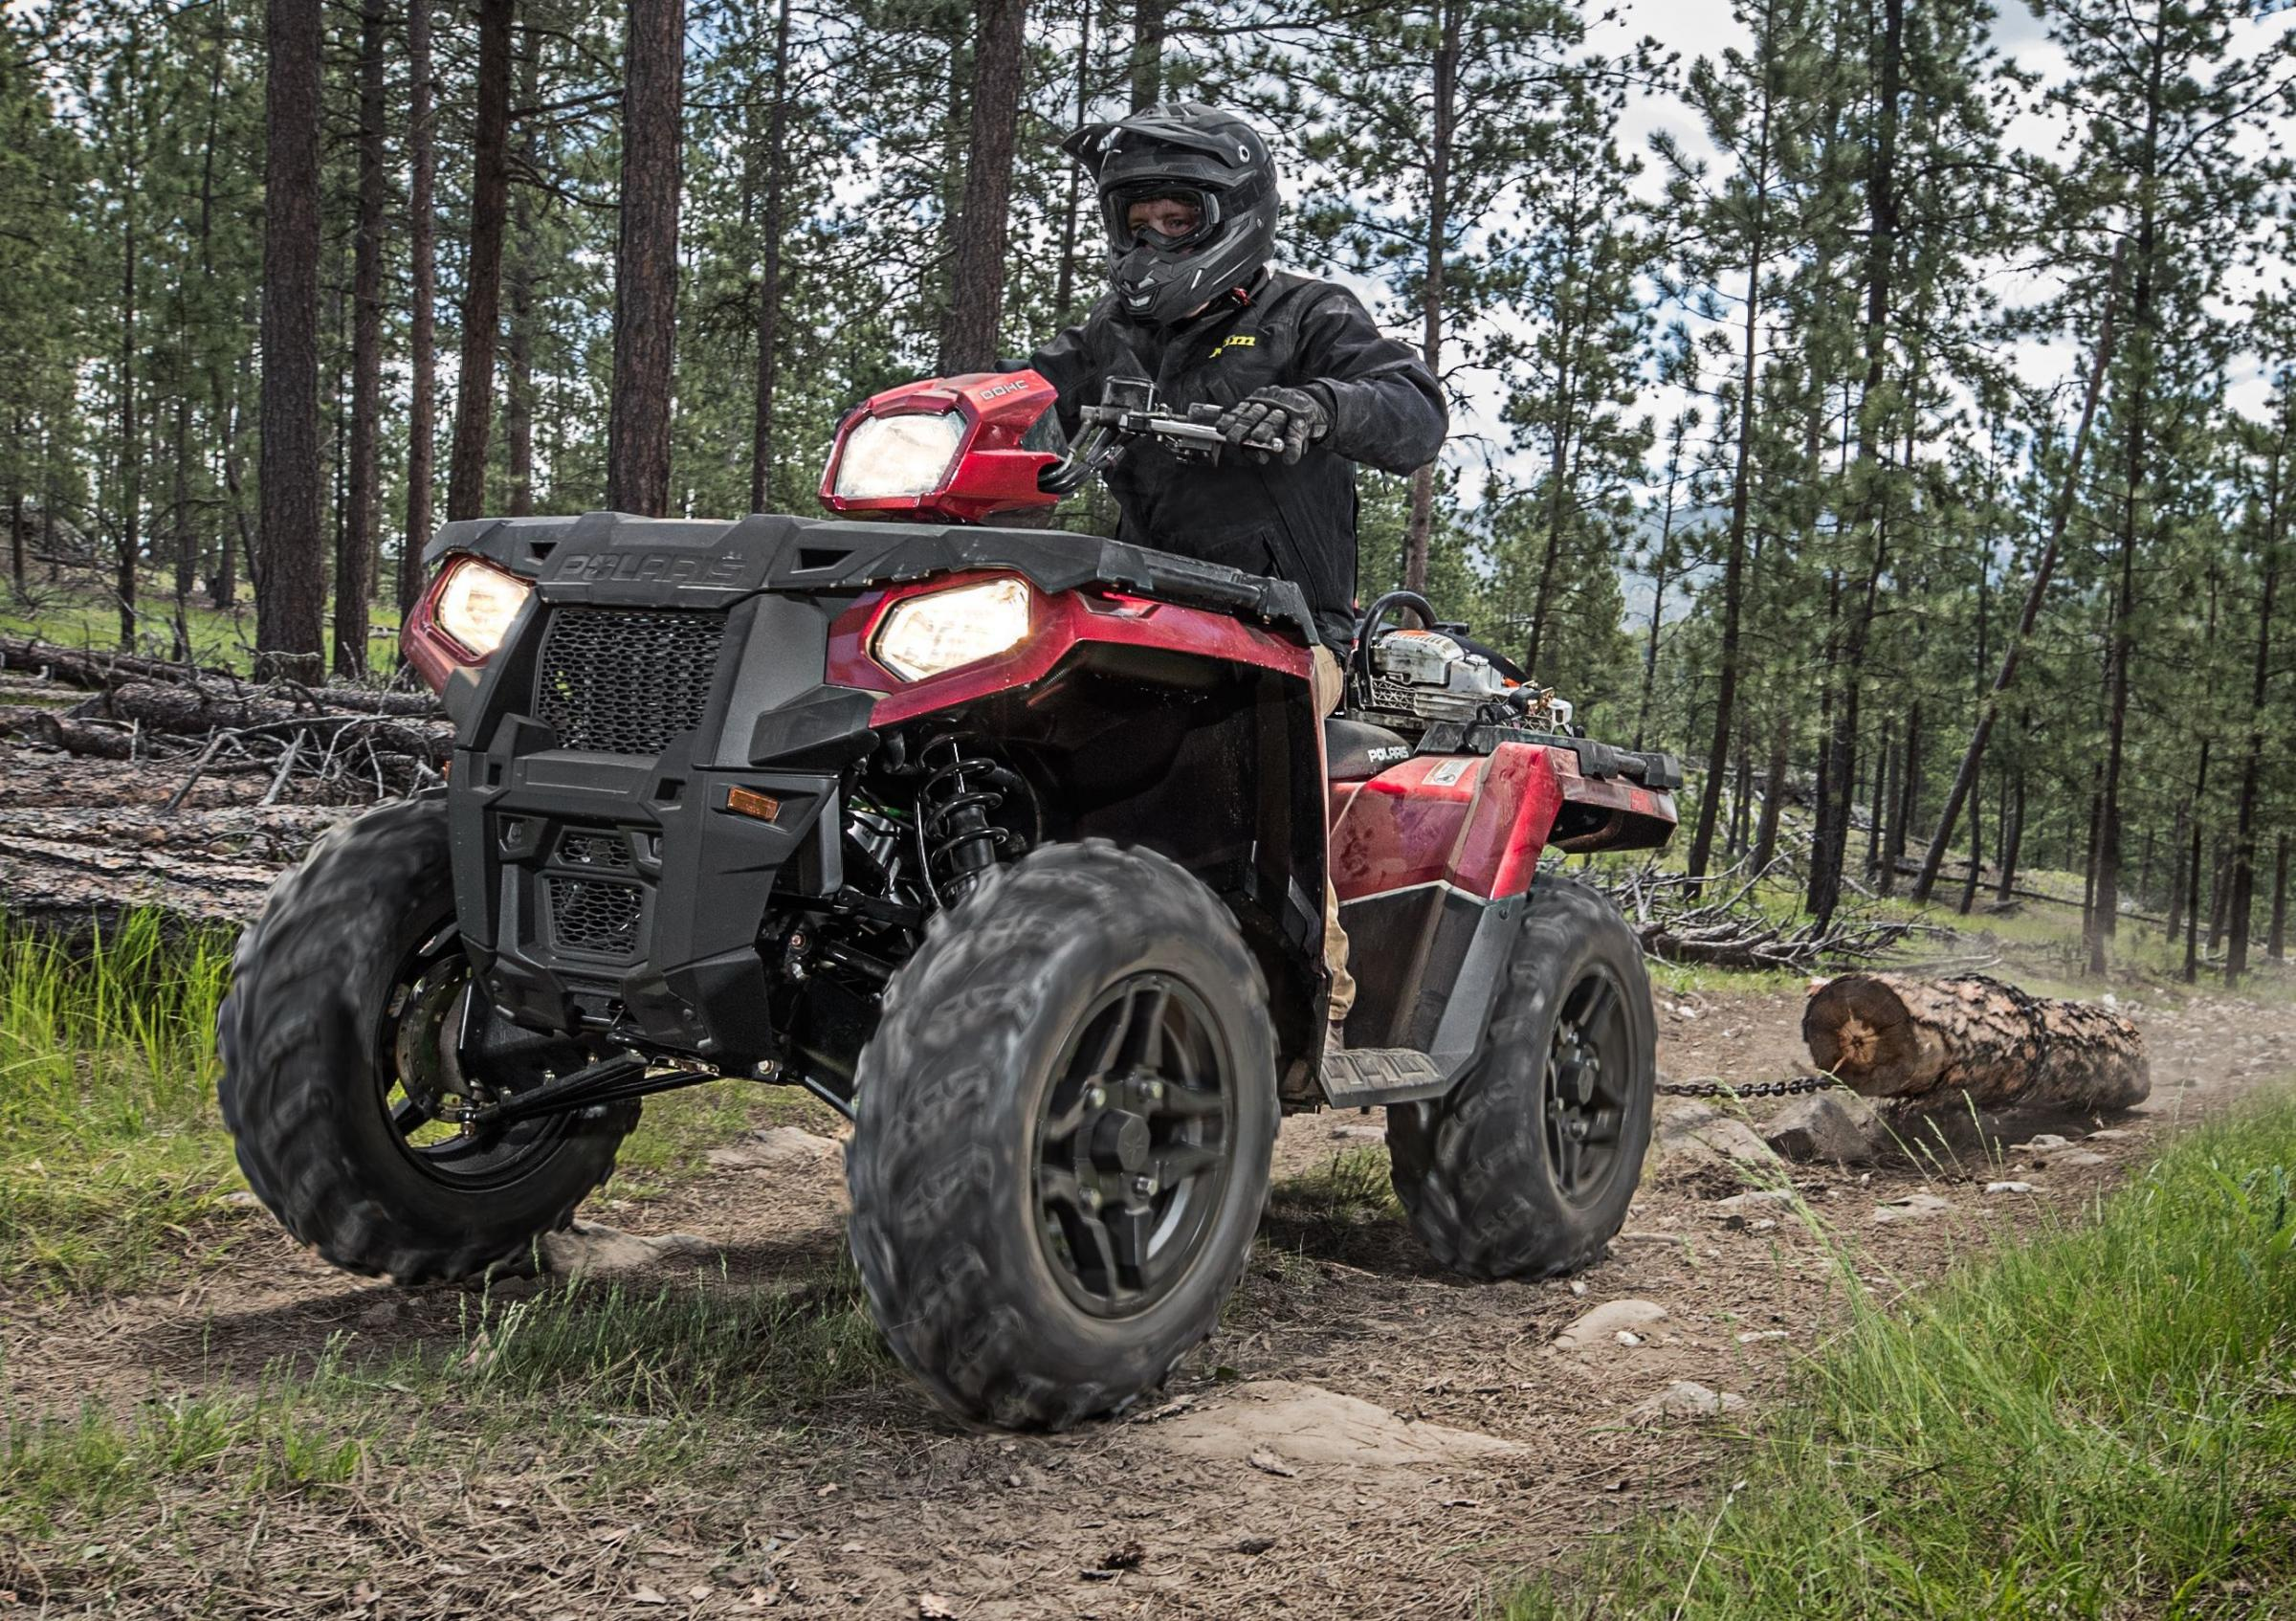 The ATV tracking device can help you if a vehicle is stolen or keep track of a fleet of vehicles